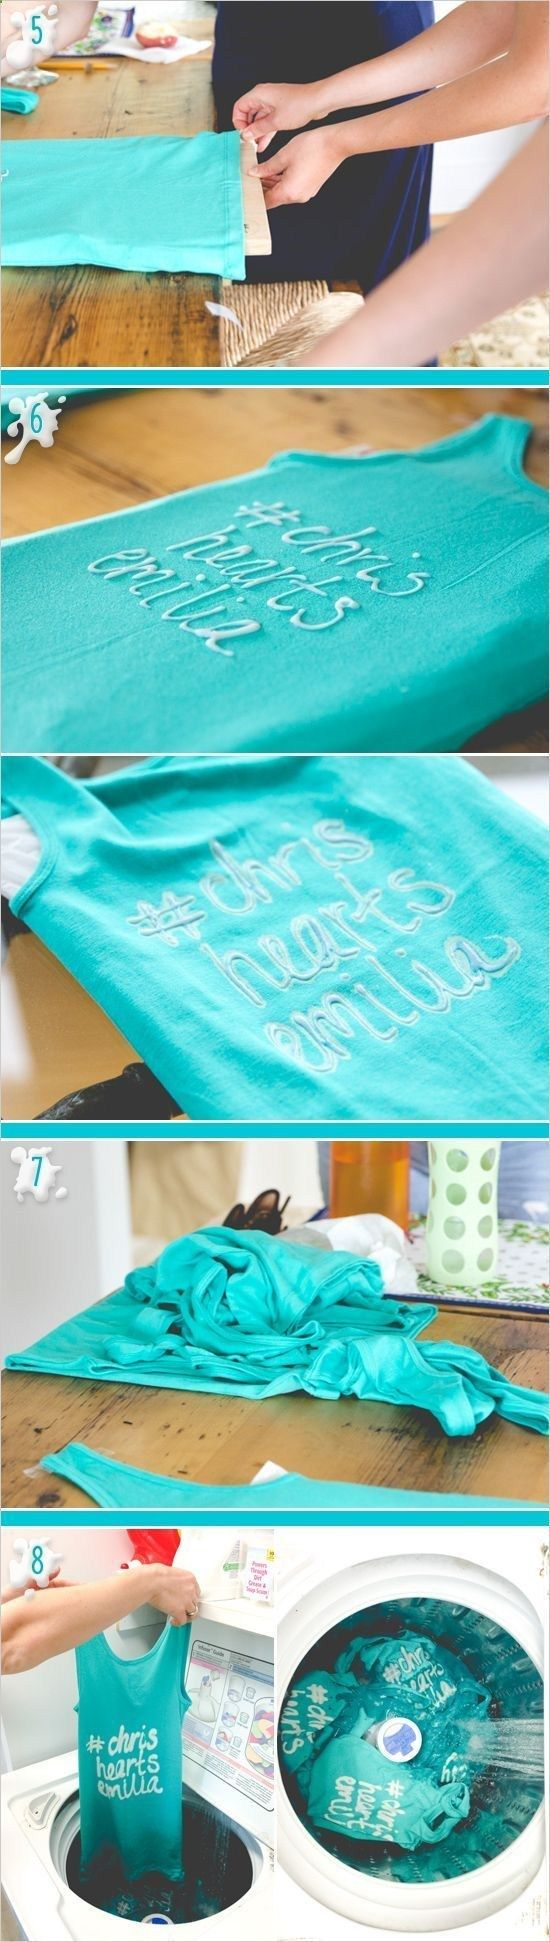 DIY Bleach Pen for Tees Tanks // terrific for family vacation shirts, team shirts, bridesmaids, etc. - Polka Pics